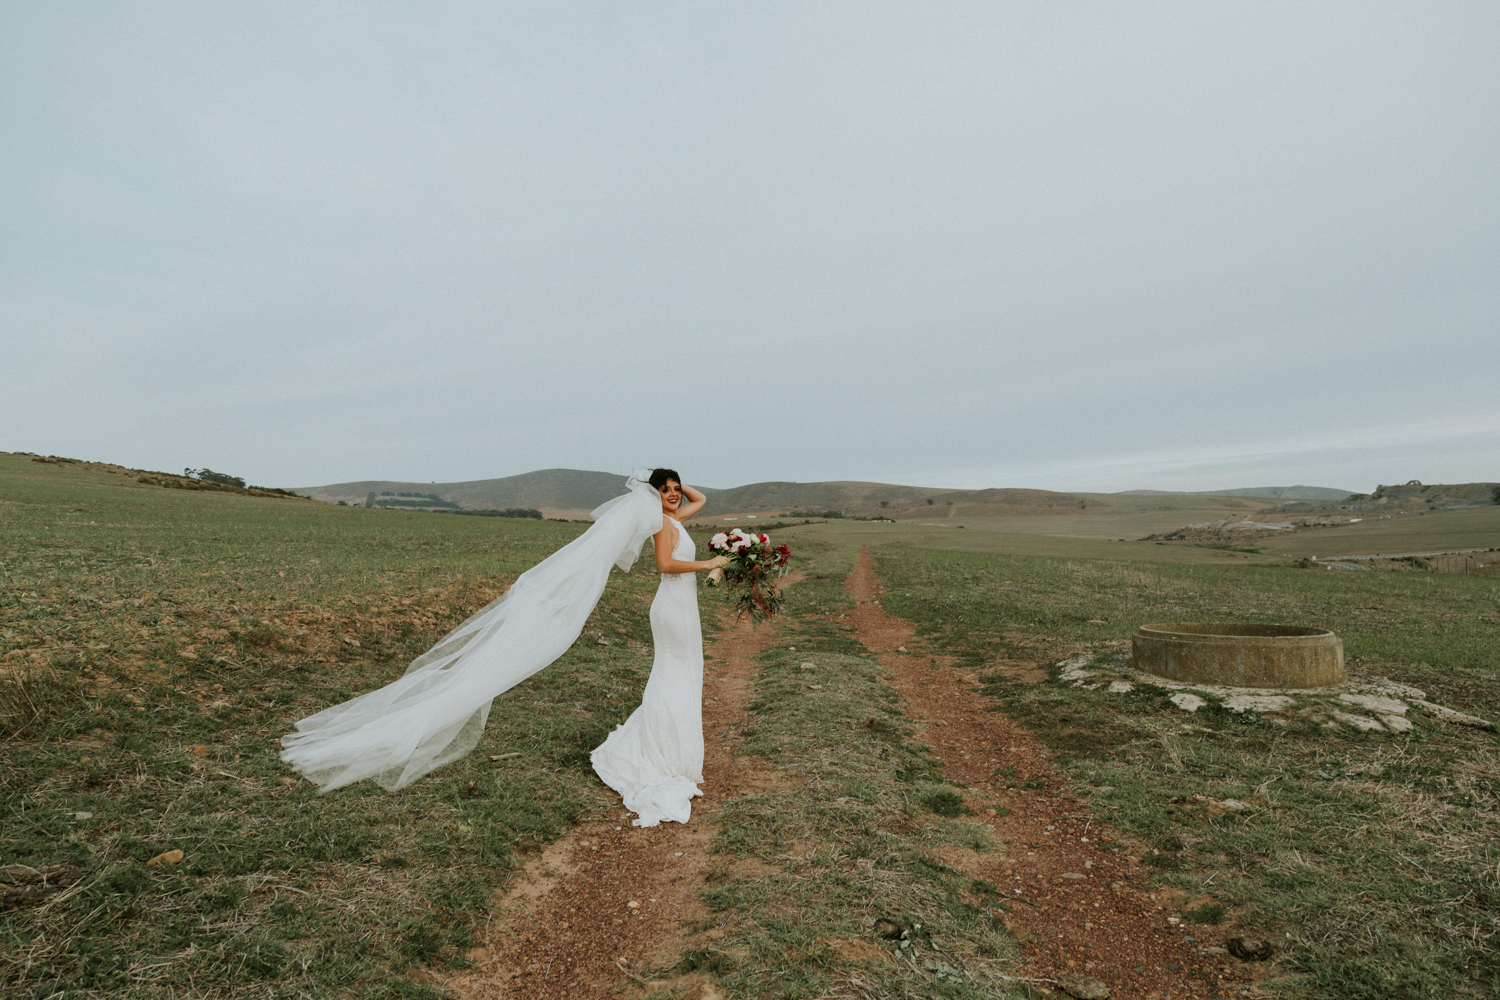 Cape Town Winter Wedding - Bianca Asher Photography-96.jpg